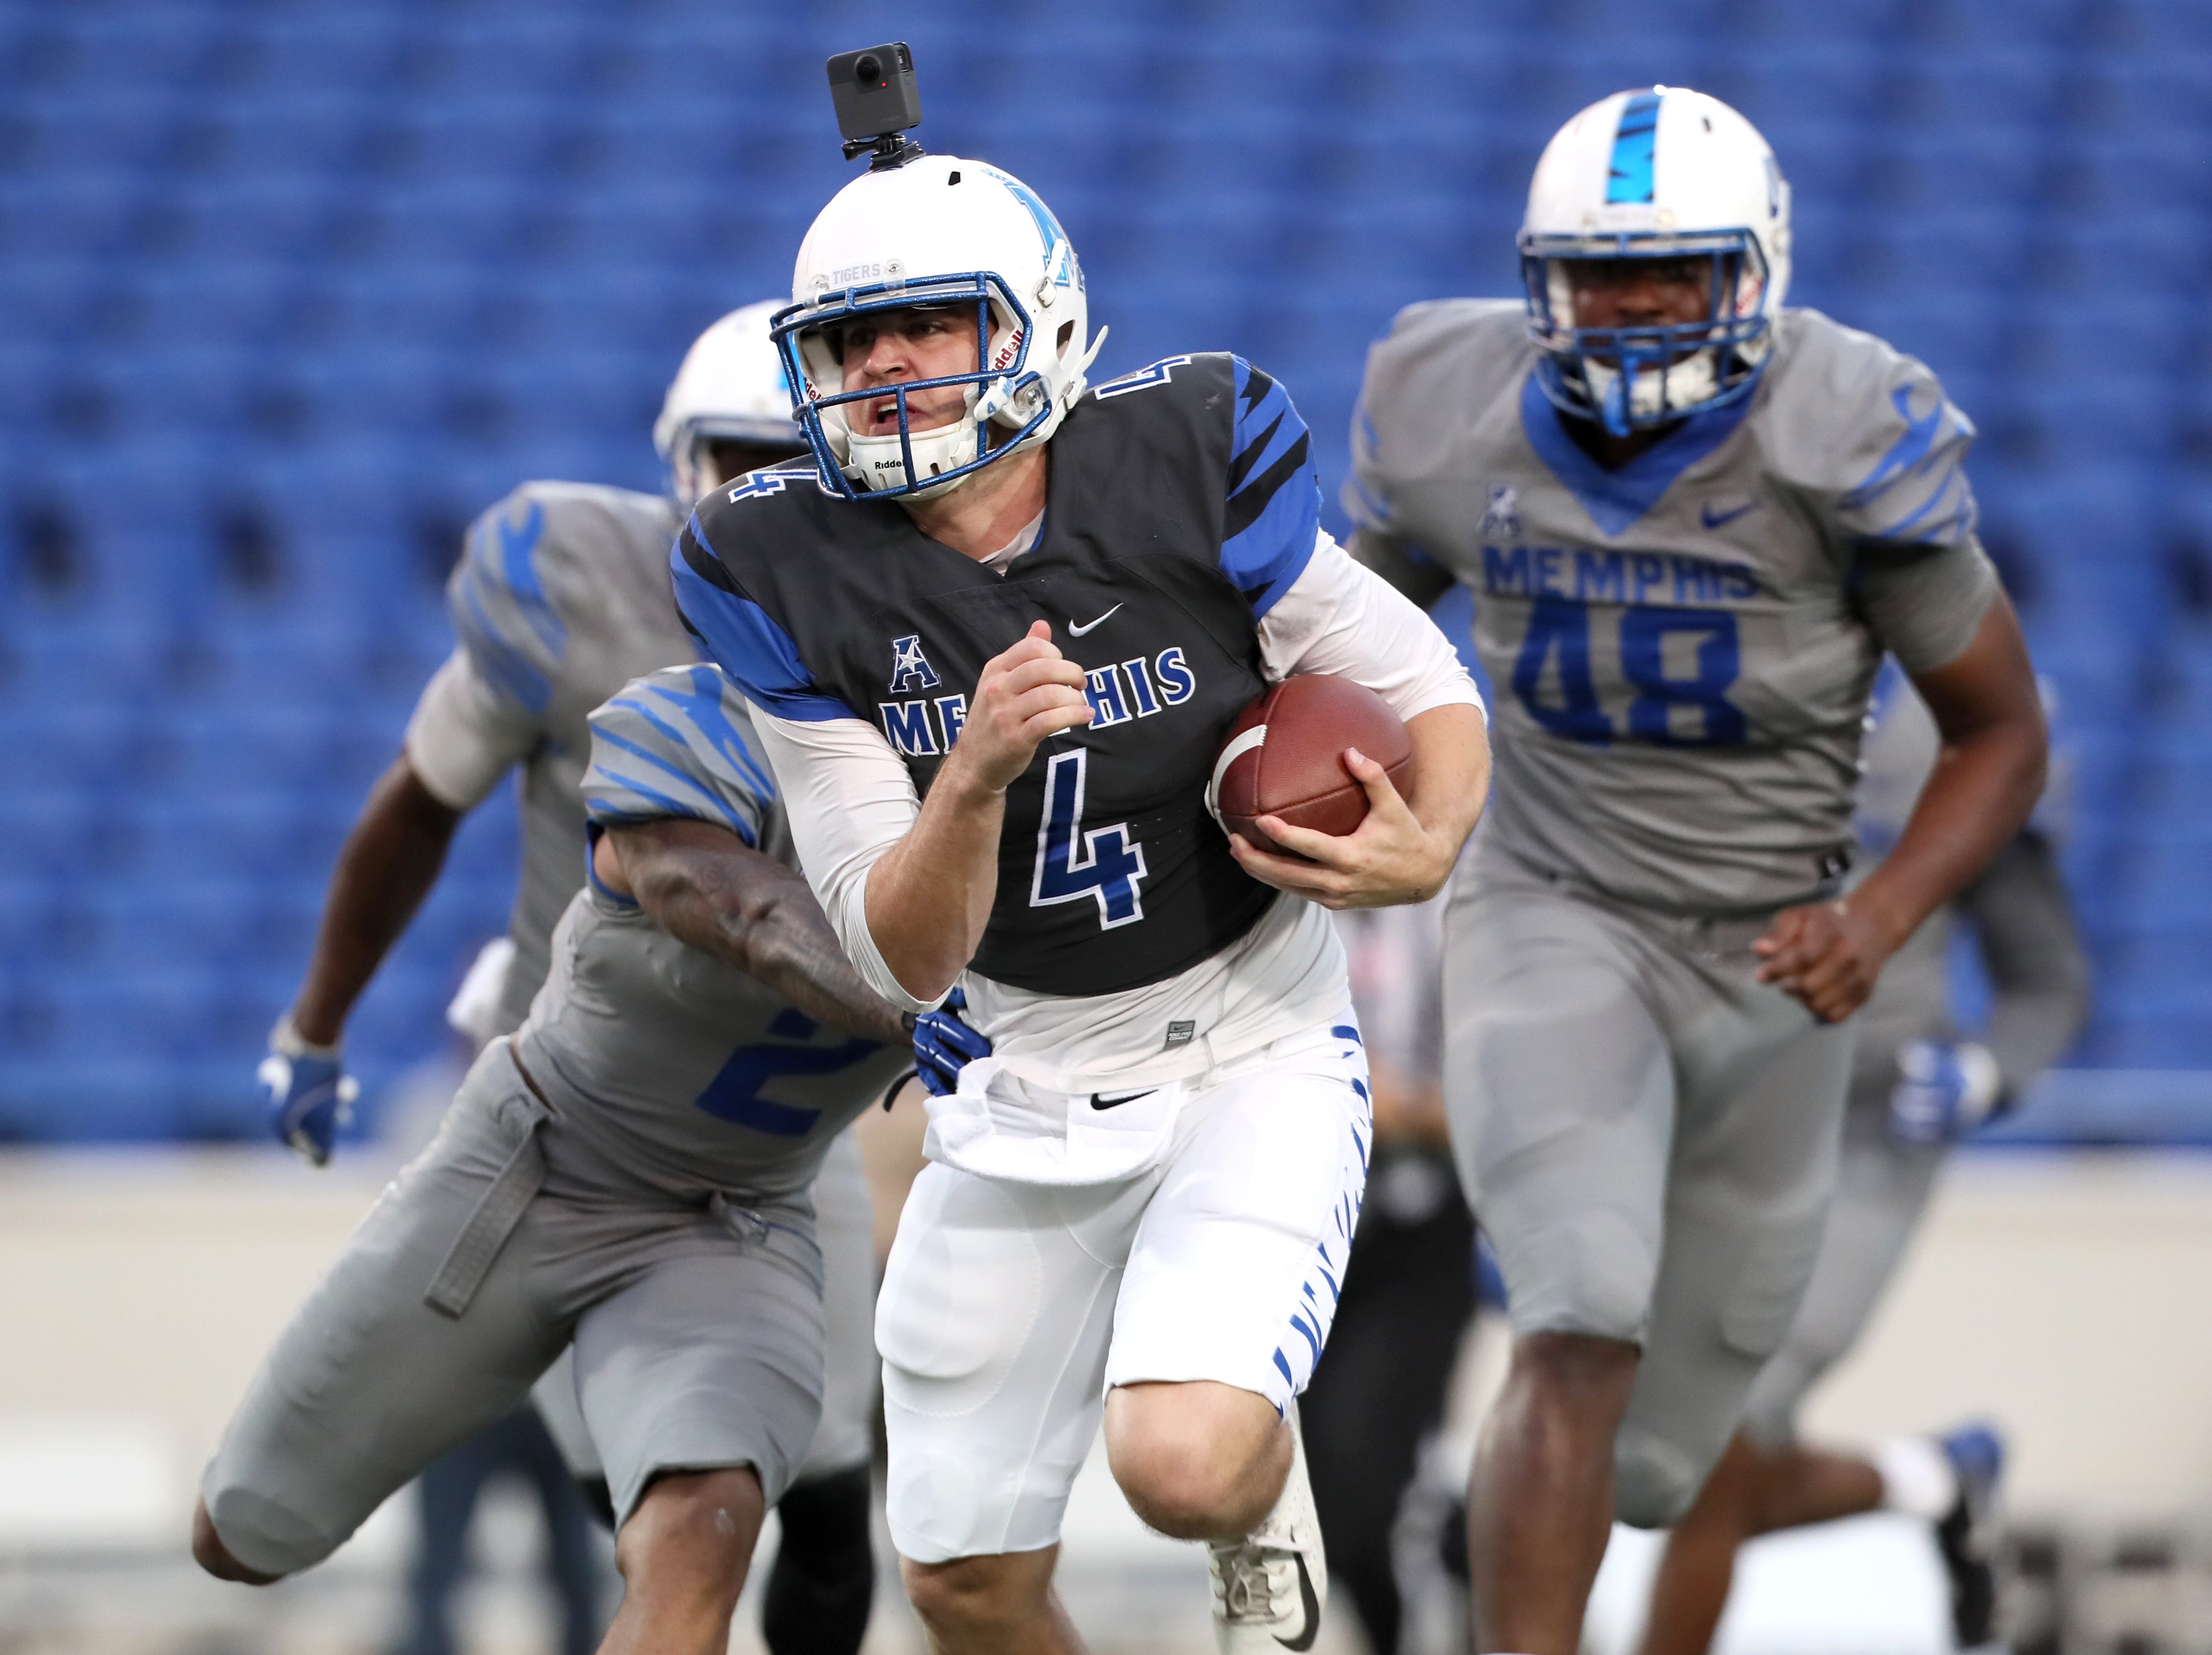 Memphis Tigers quarterback Brady McBride scrambles out of the pocket during their Friday Night Stripes spring game at Liberty Bowl Memorial Stadium on Friday, April 12, 2019.